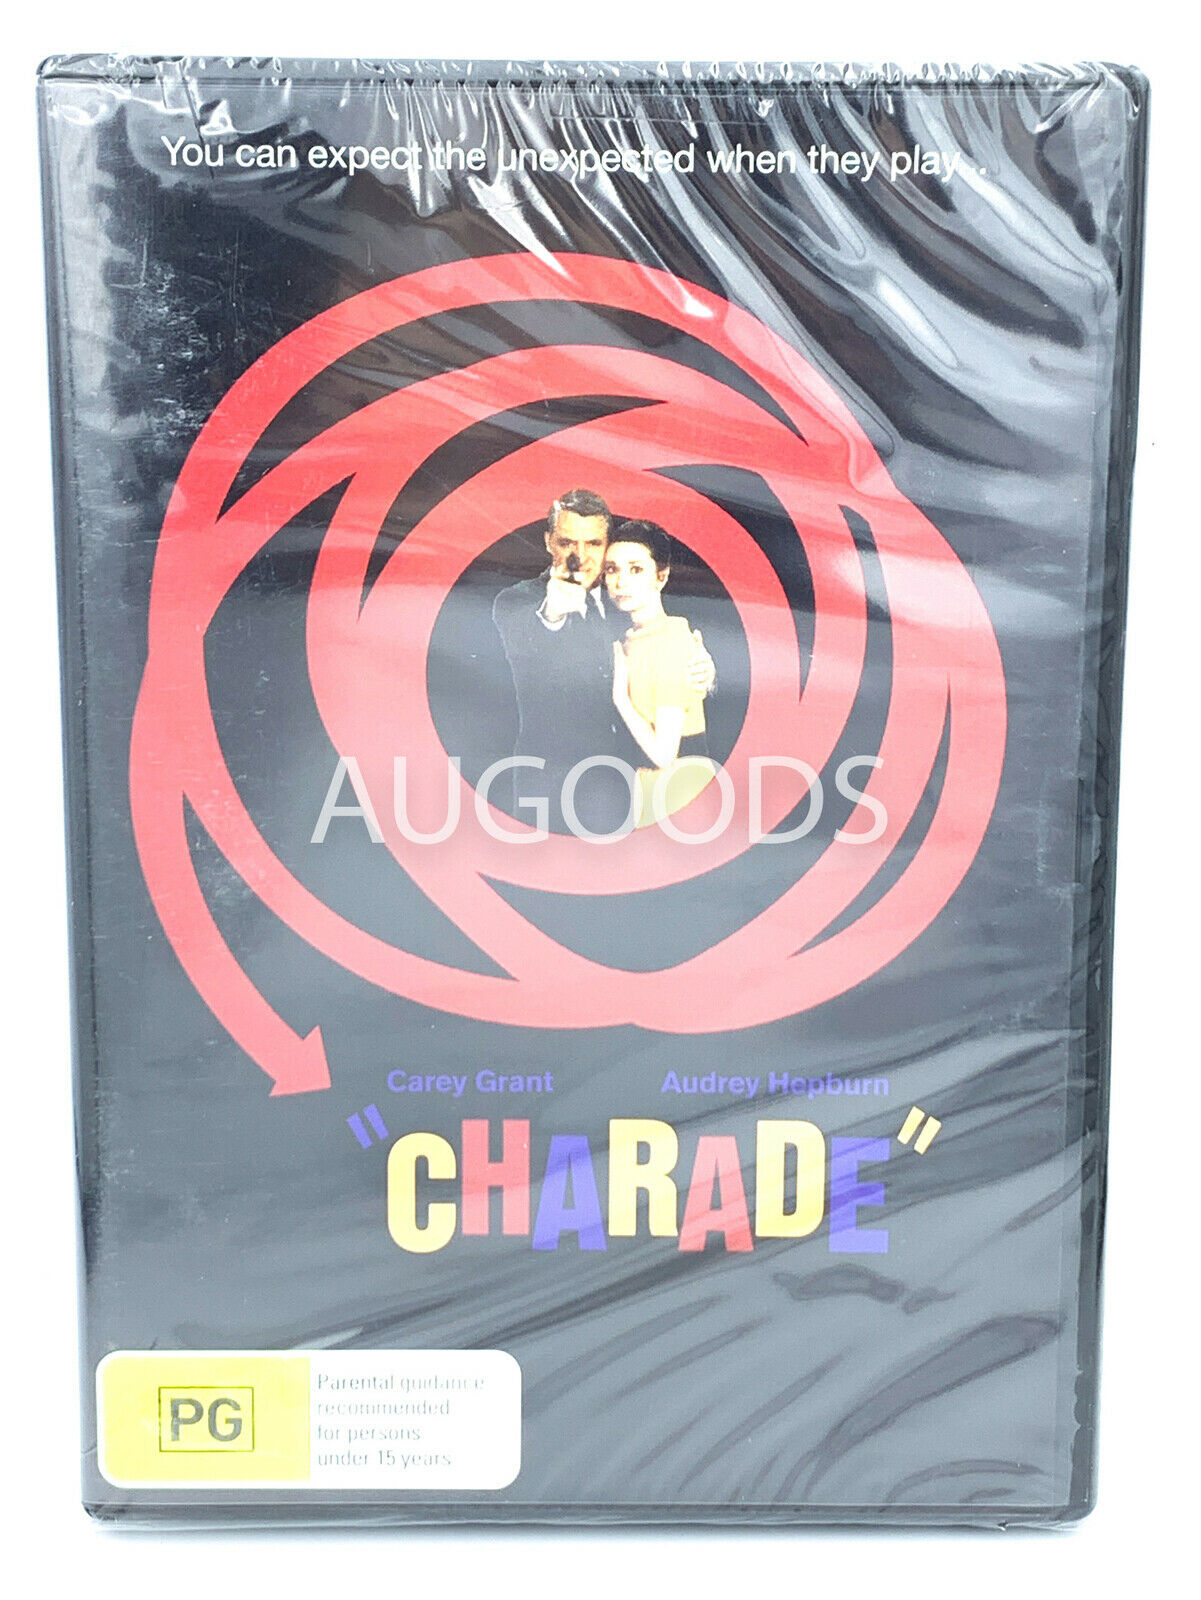 DVD - Charade (Preowned)